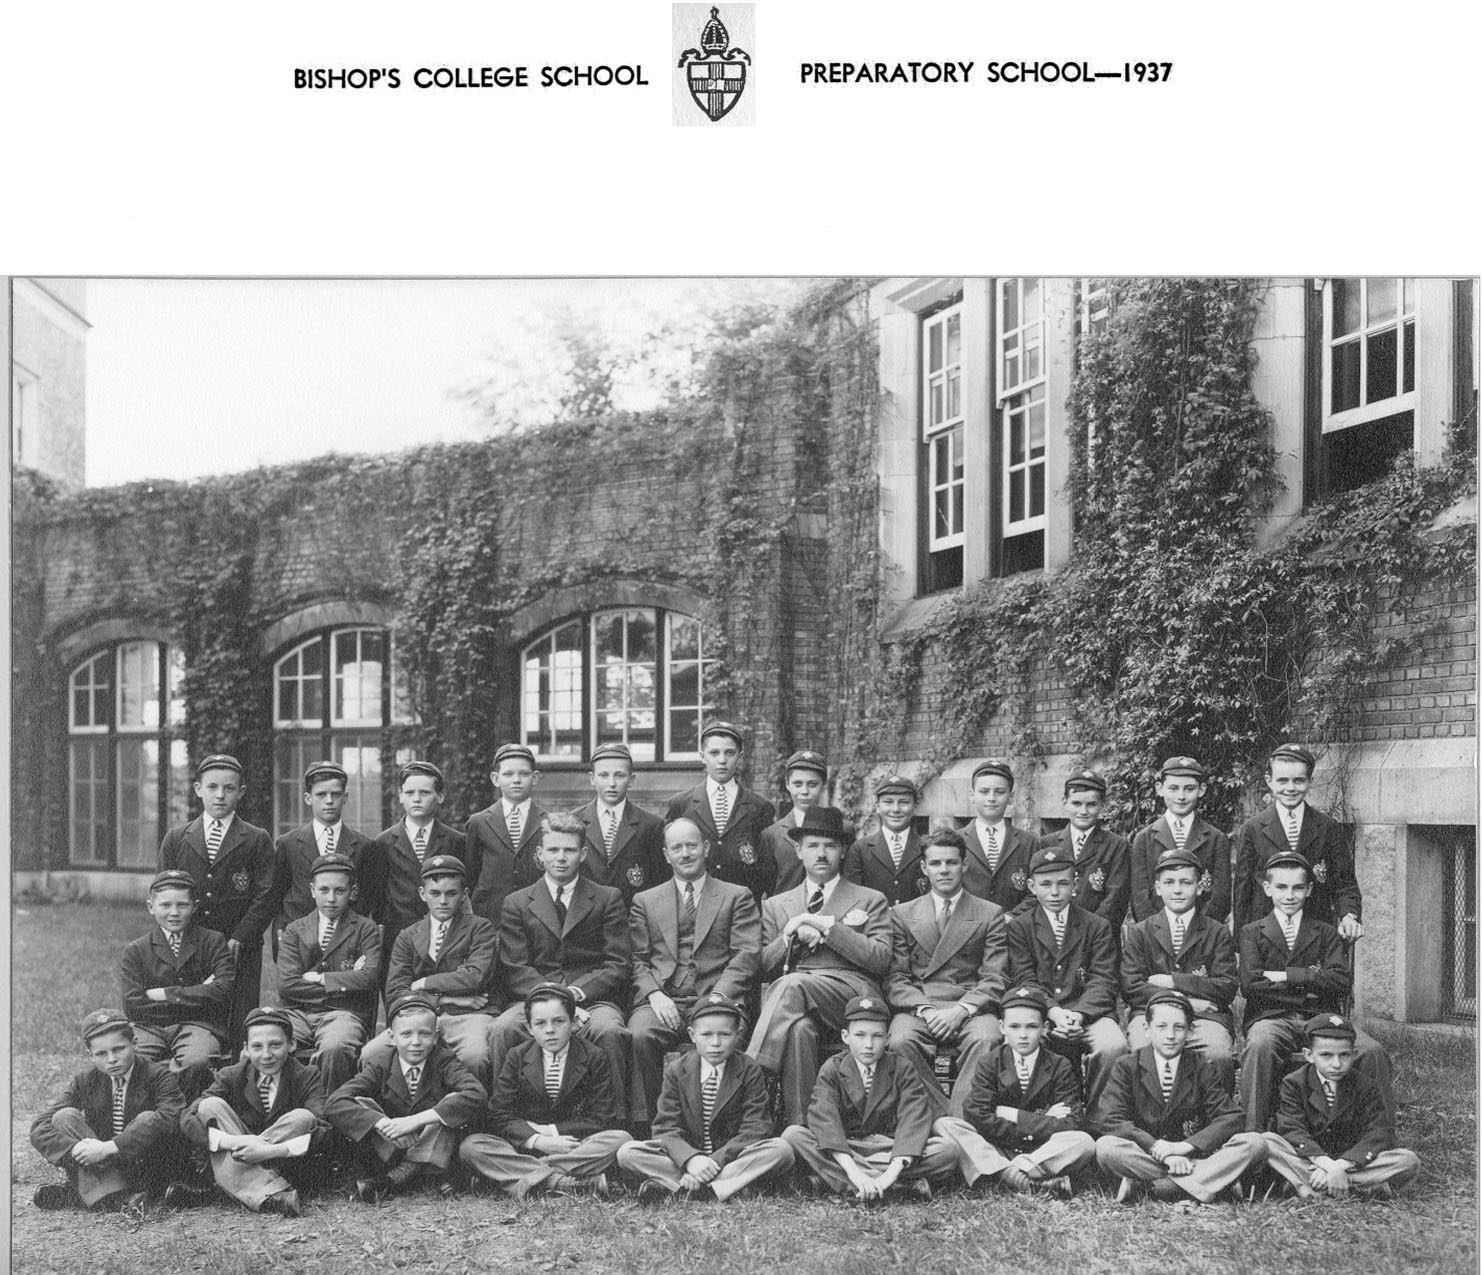 Group Photo– Bishop's College School - Preparatory School 1937 Brian Lynn is seated middle row third from the right.